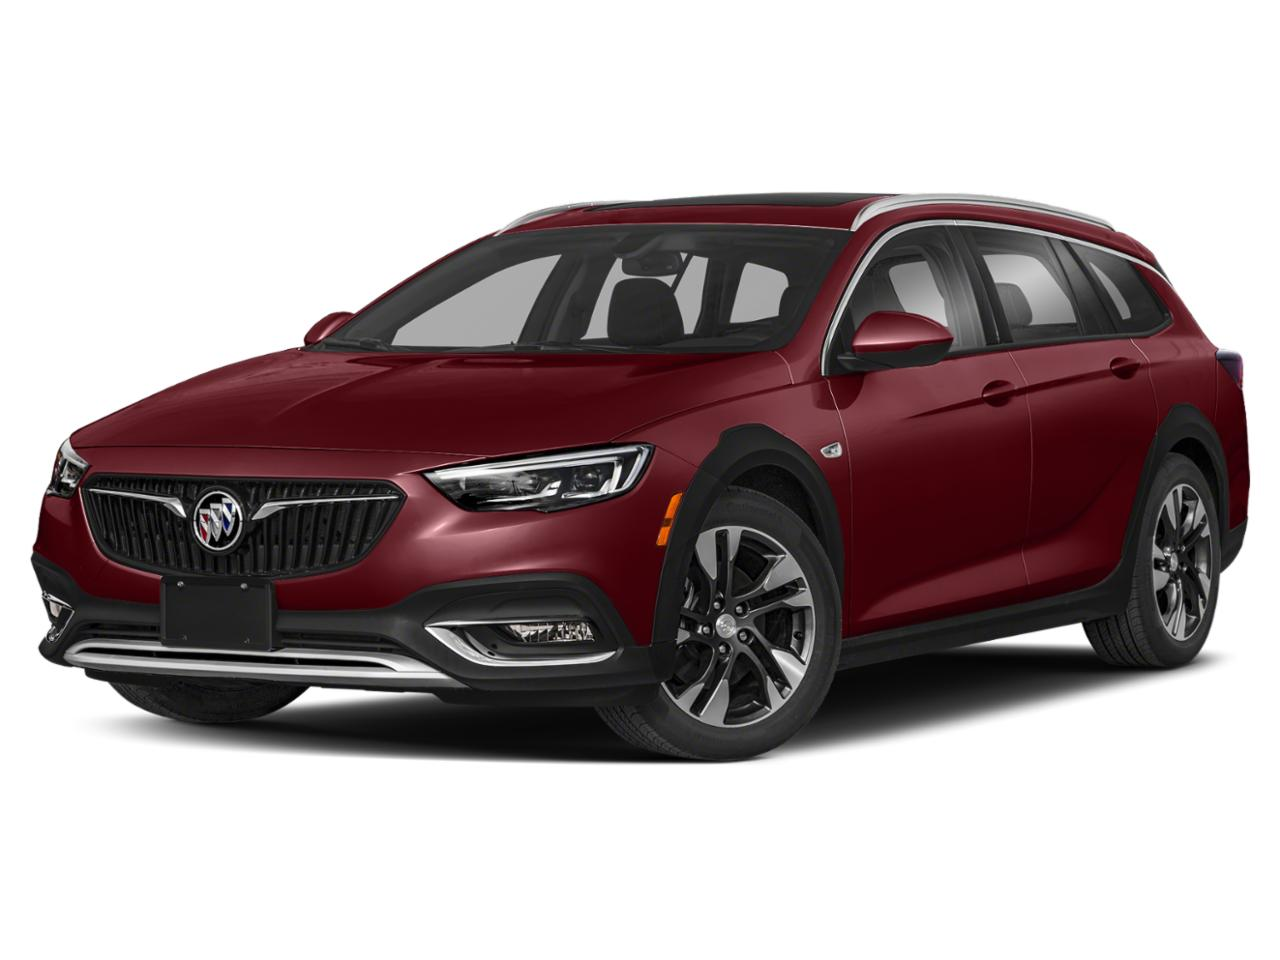 2018 Buick Regal TourX Vehicle Photo in Prescott, AZ 86305